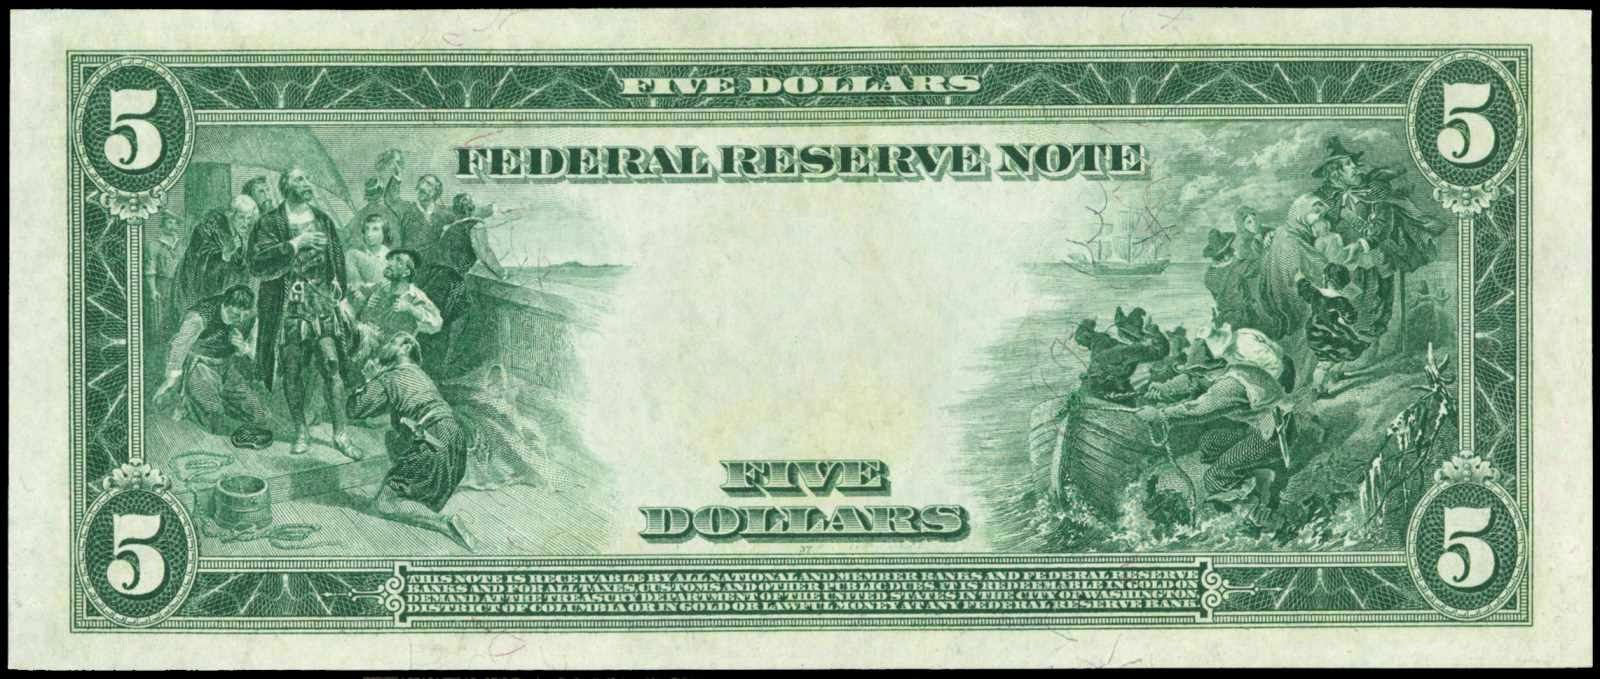 1914 5 Dollars Federal Reserve Note Red Seal